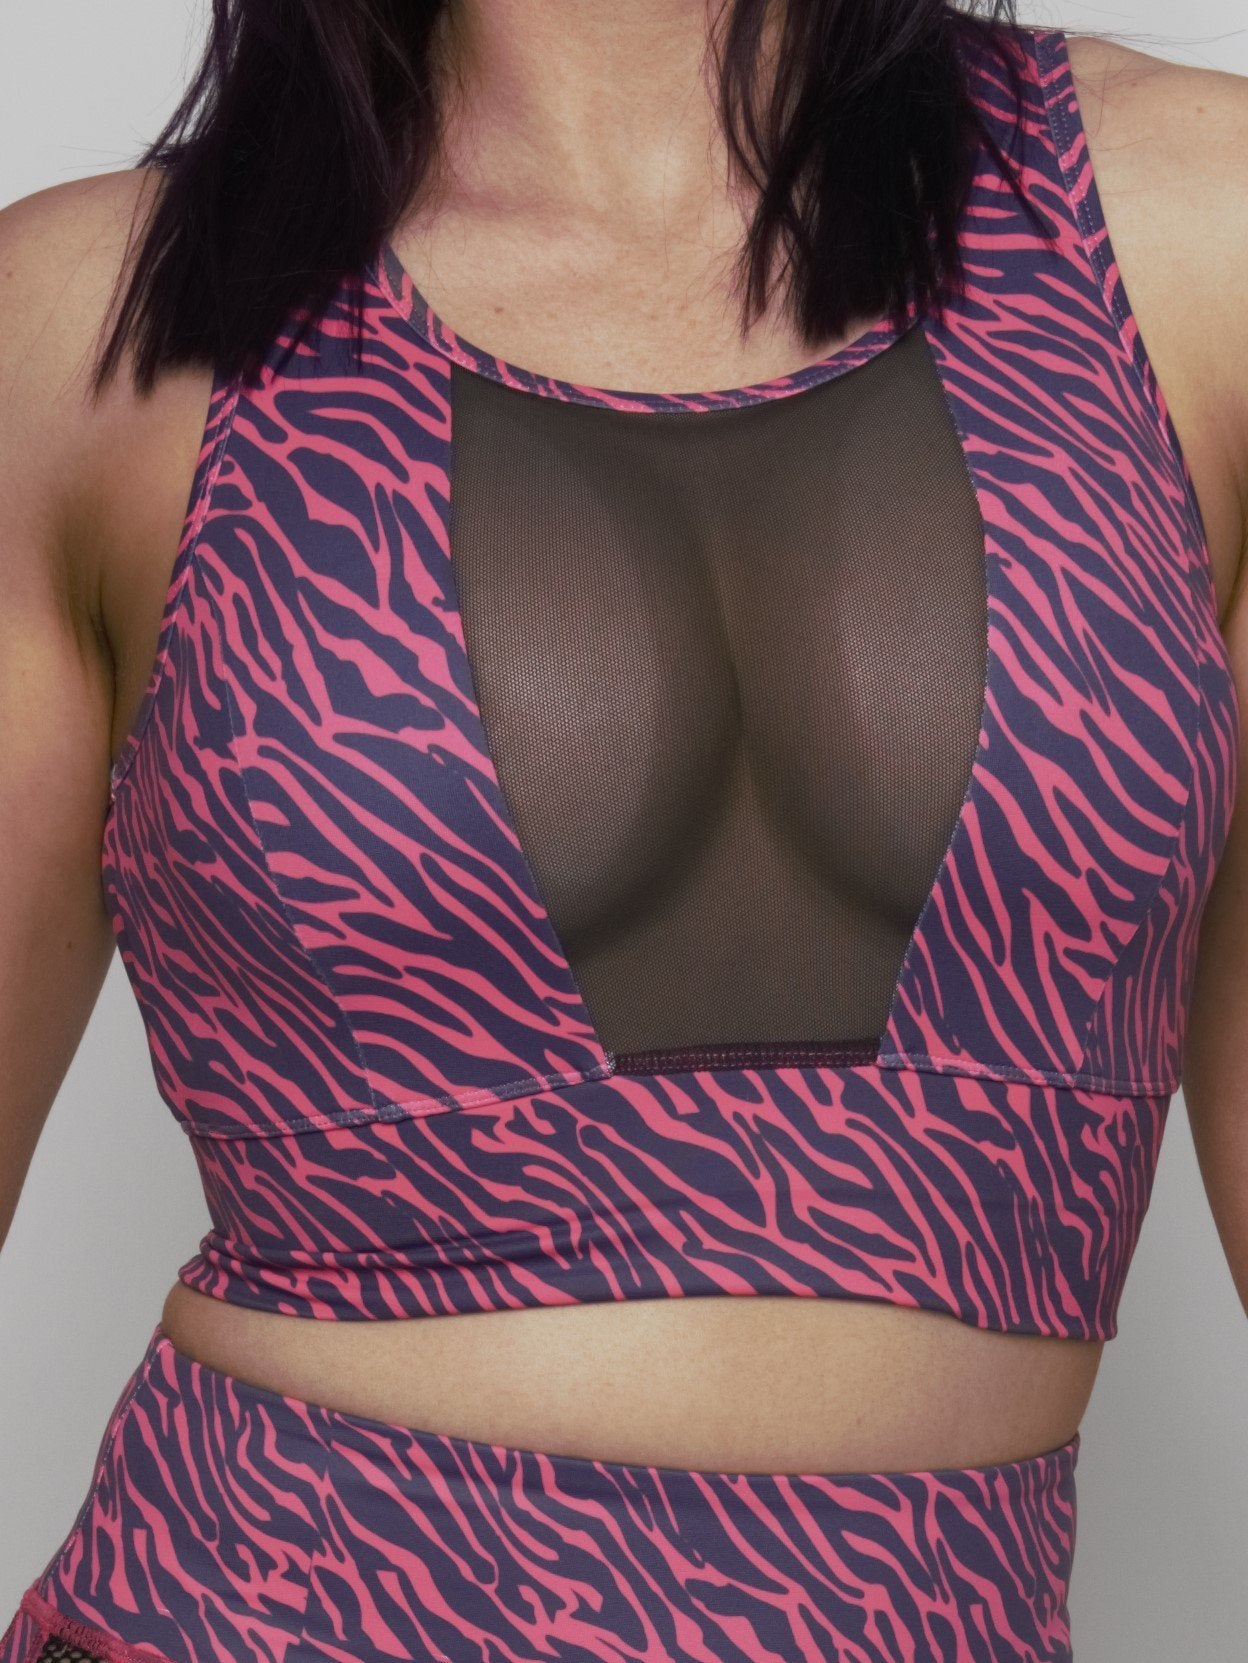 Pink Tiger Mesh Crop - Iron Addiction